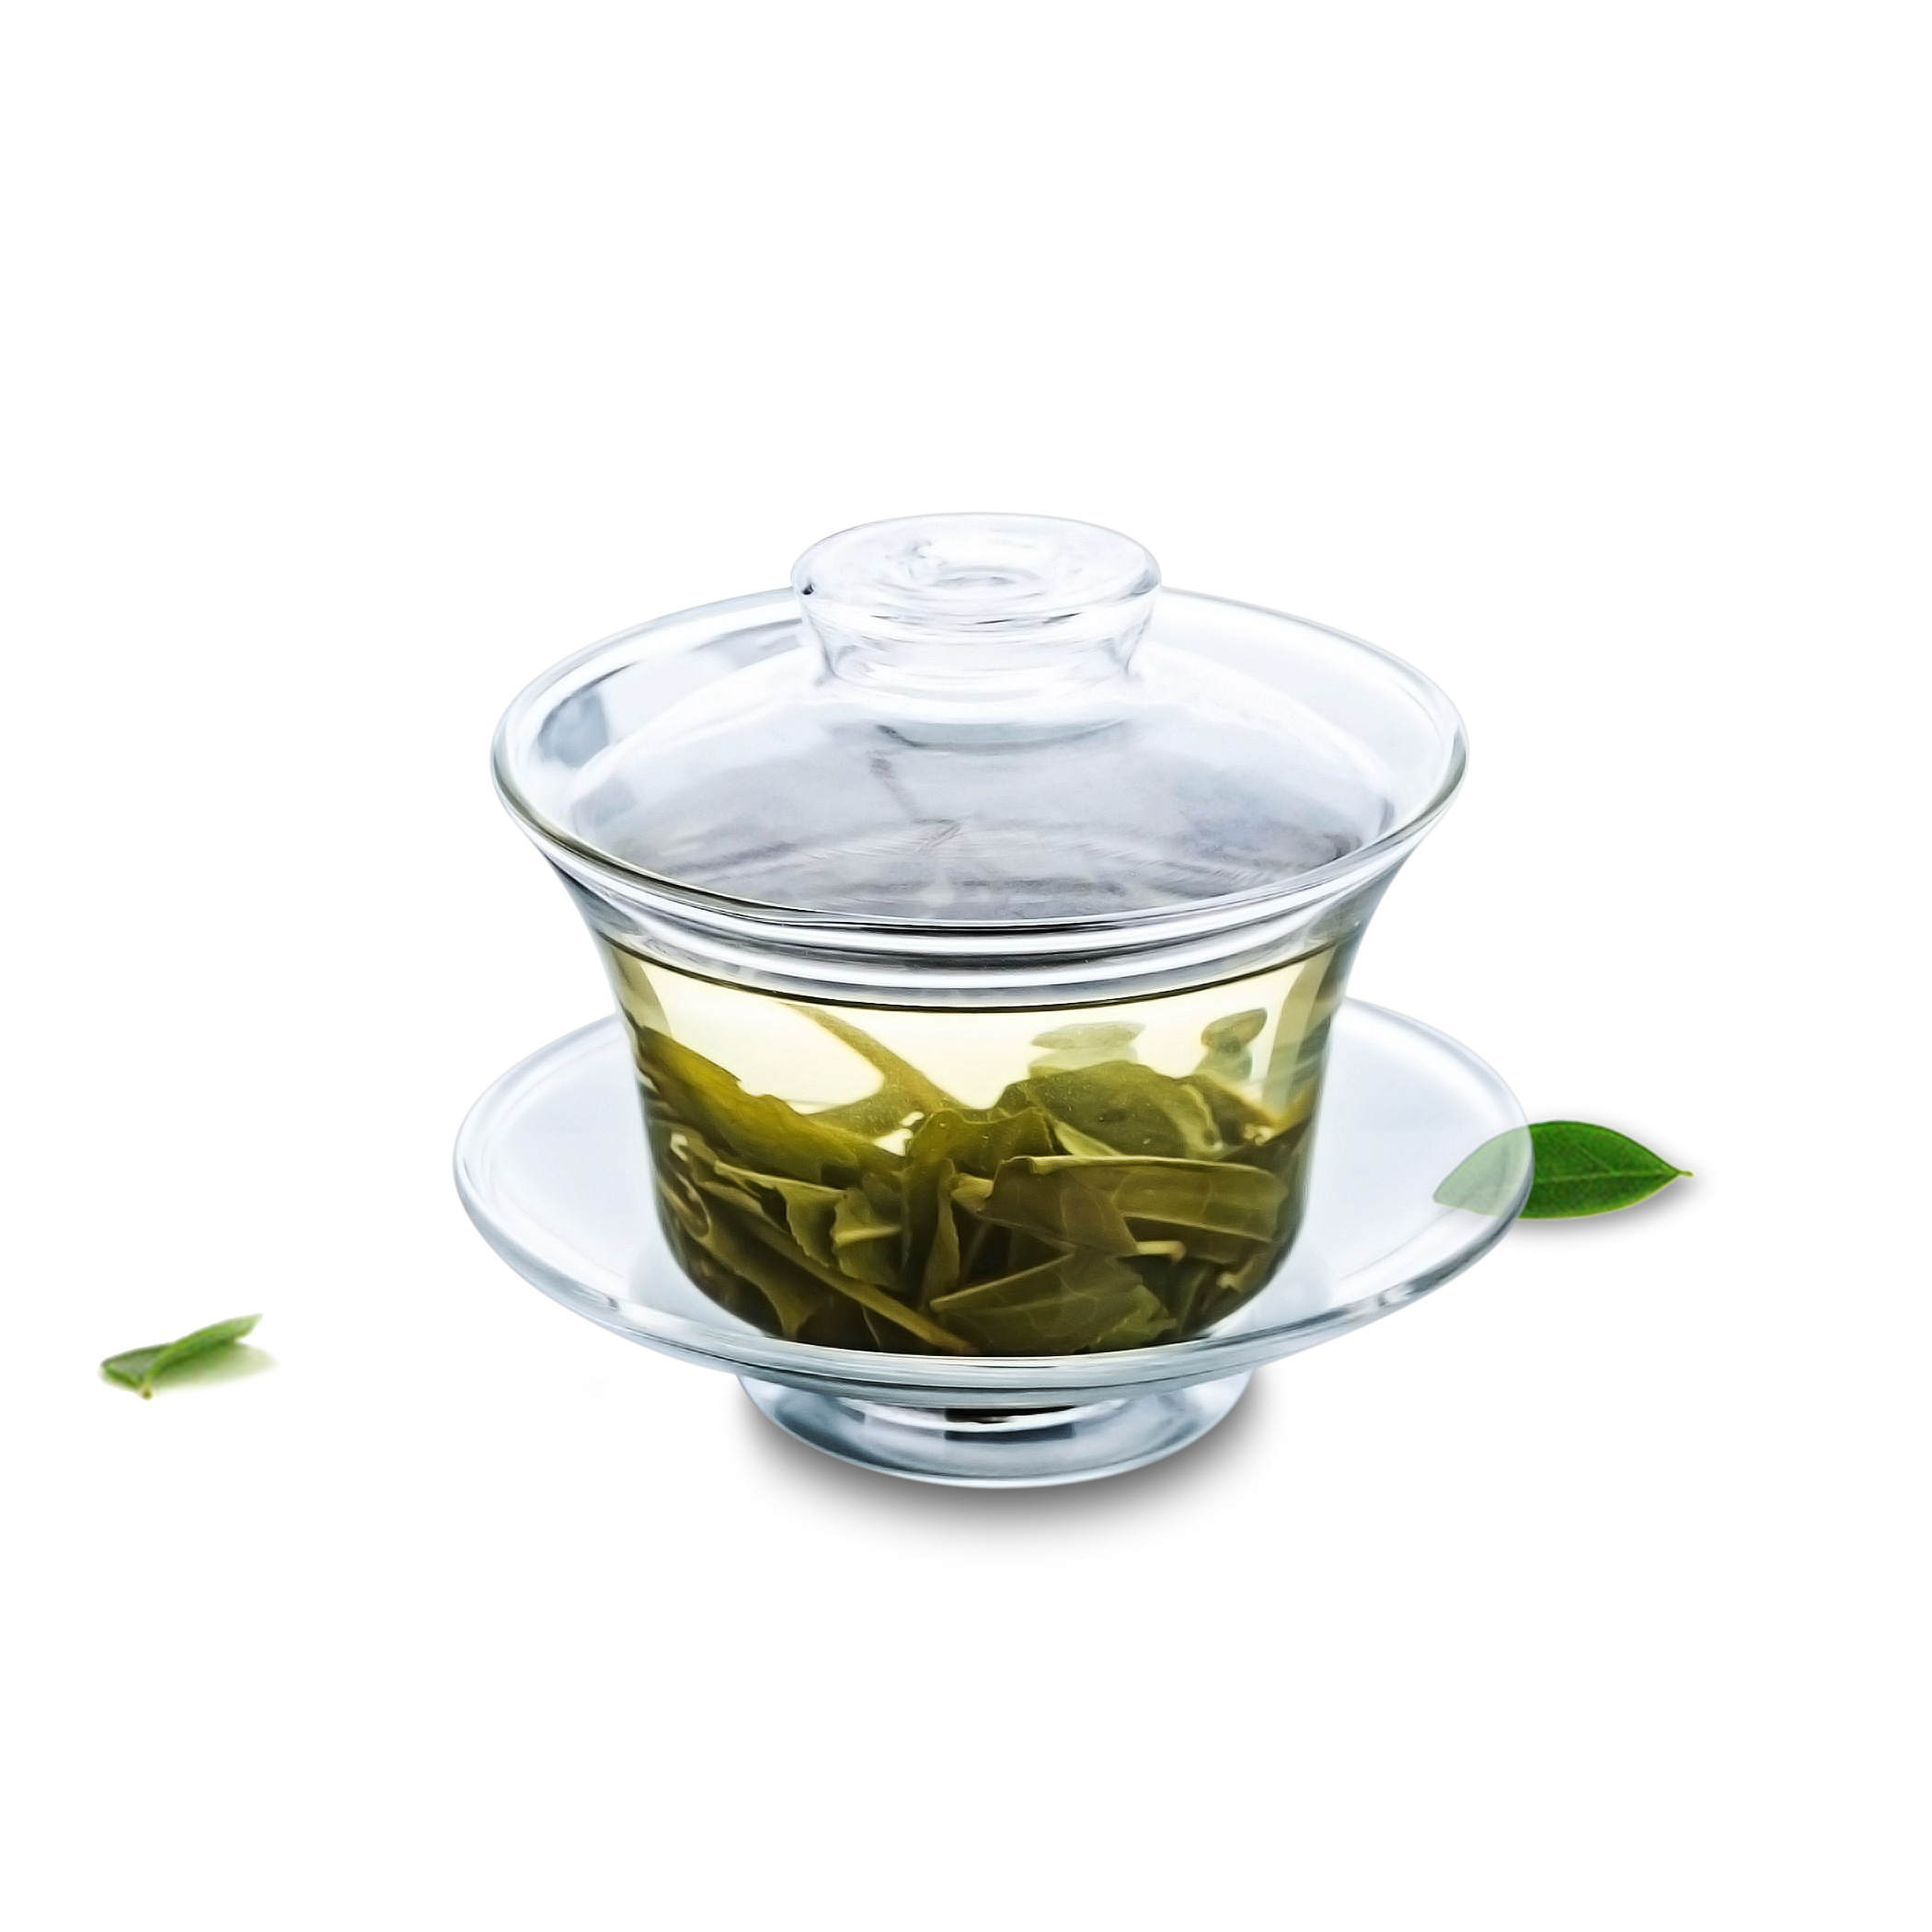 1x High-quanlity Tea Tureen Heat-Resisting Clear Glass Gongfu 165ml Teapot Water Cup Small Tea Pot With Saucer & Lid ( Gaiwan )